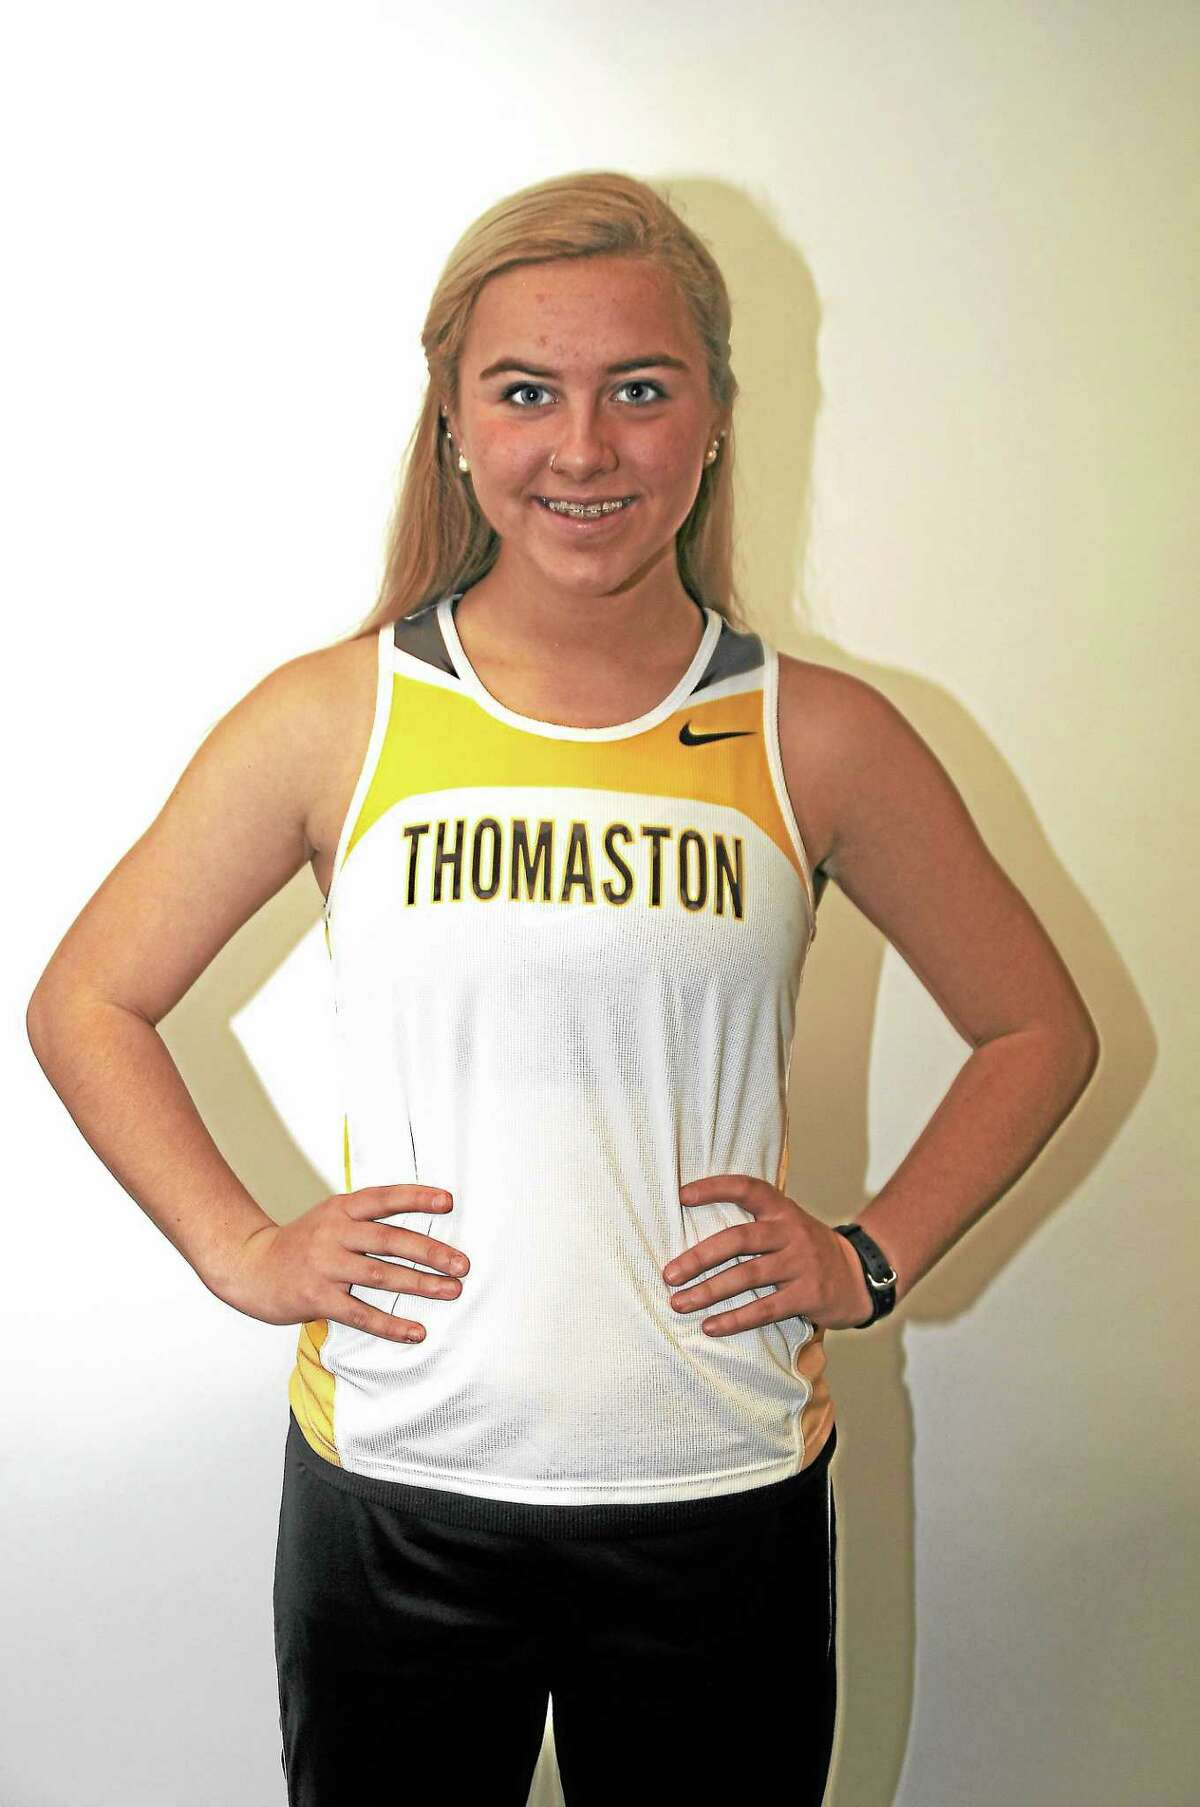 Sabrina Olsen – MVP Thomaston Sr. Stats: Finished in first place at the Berkshire League Championship meet in 2012 and 2013. State Champion in 2010. Honors: Four-time All-State (2010-2011-2012-2013), Three-time All-New England (2010-2011-2012) Four-time All-Berkshire League (2010-2011-2012-2013). Off the track: Will continue her career at Syracuse University.